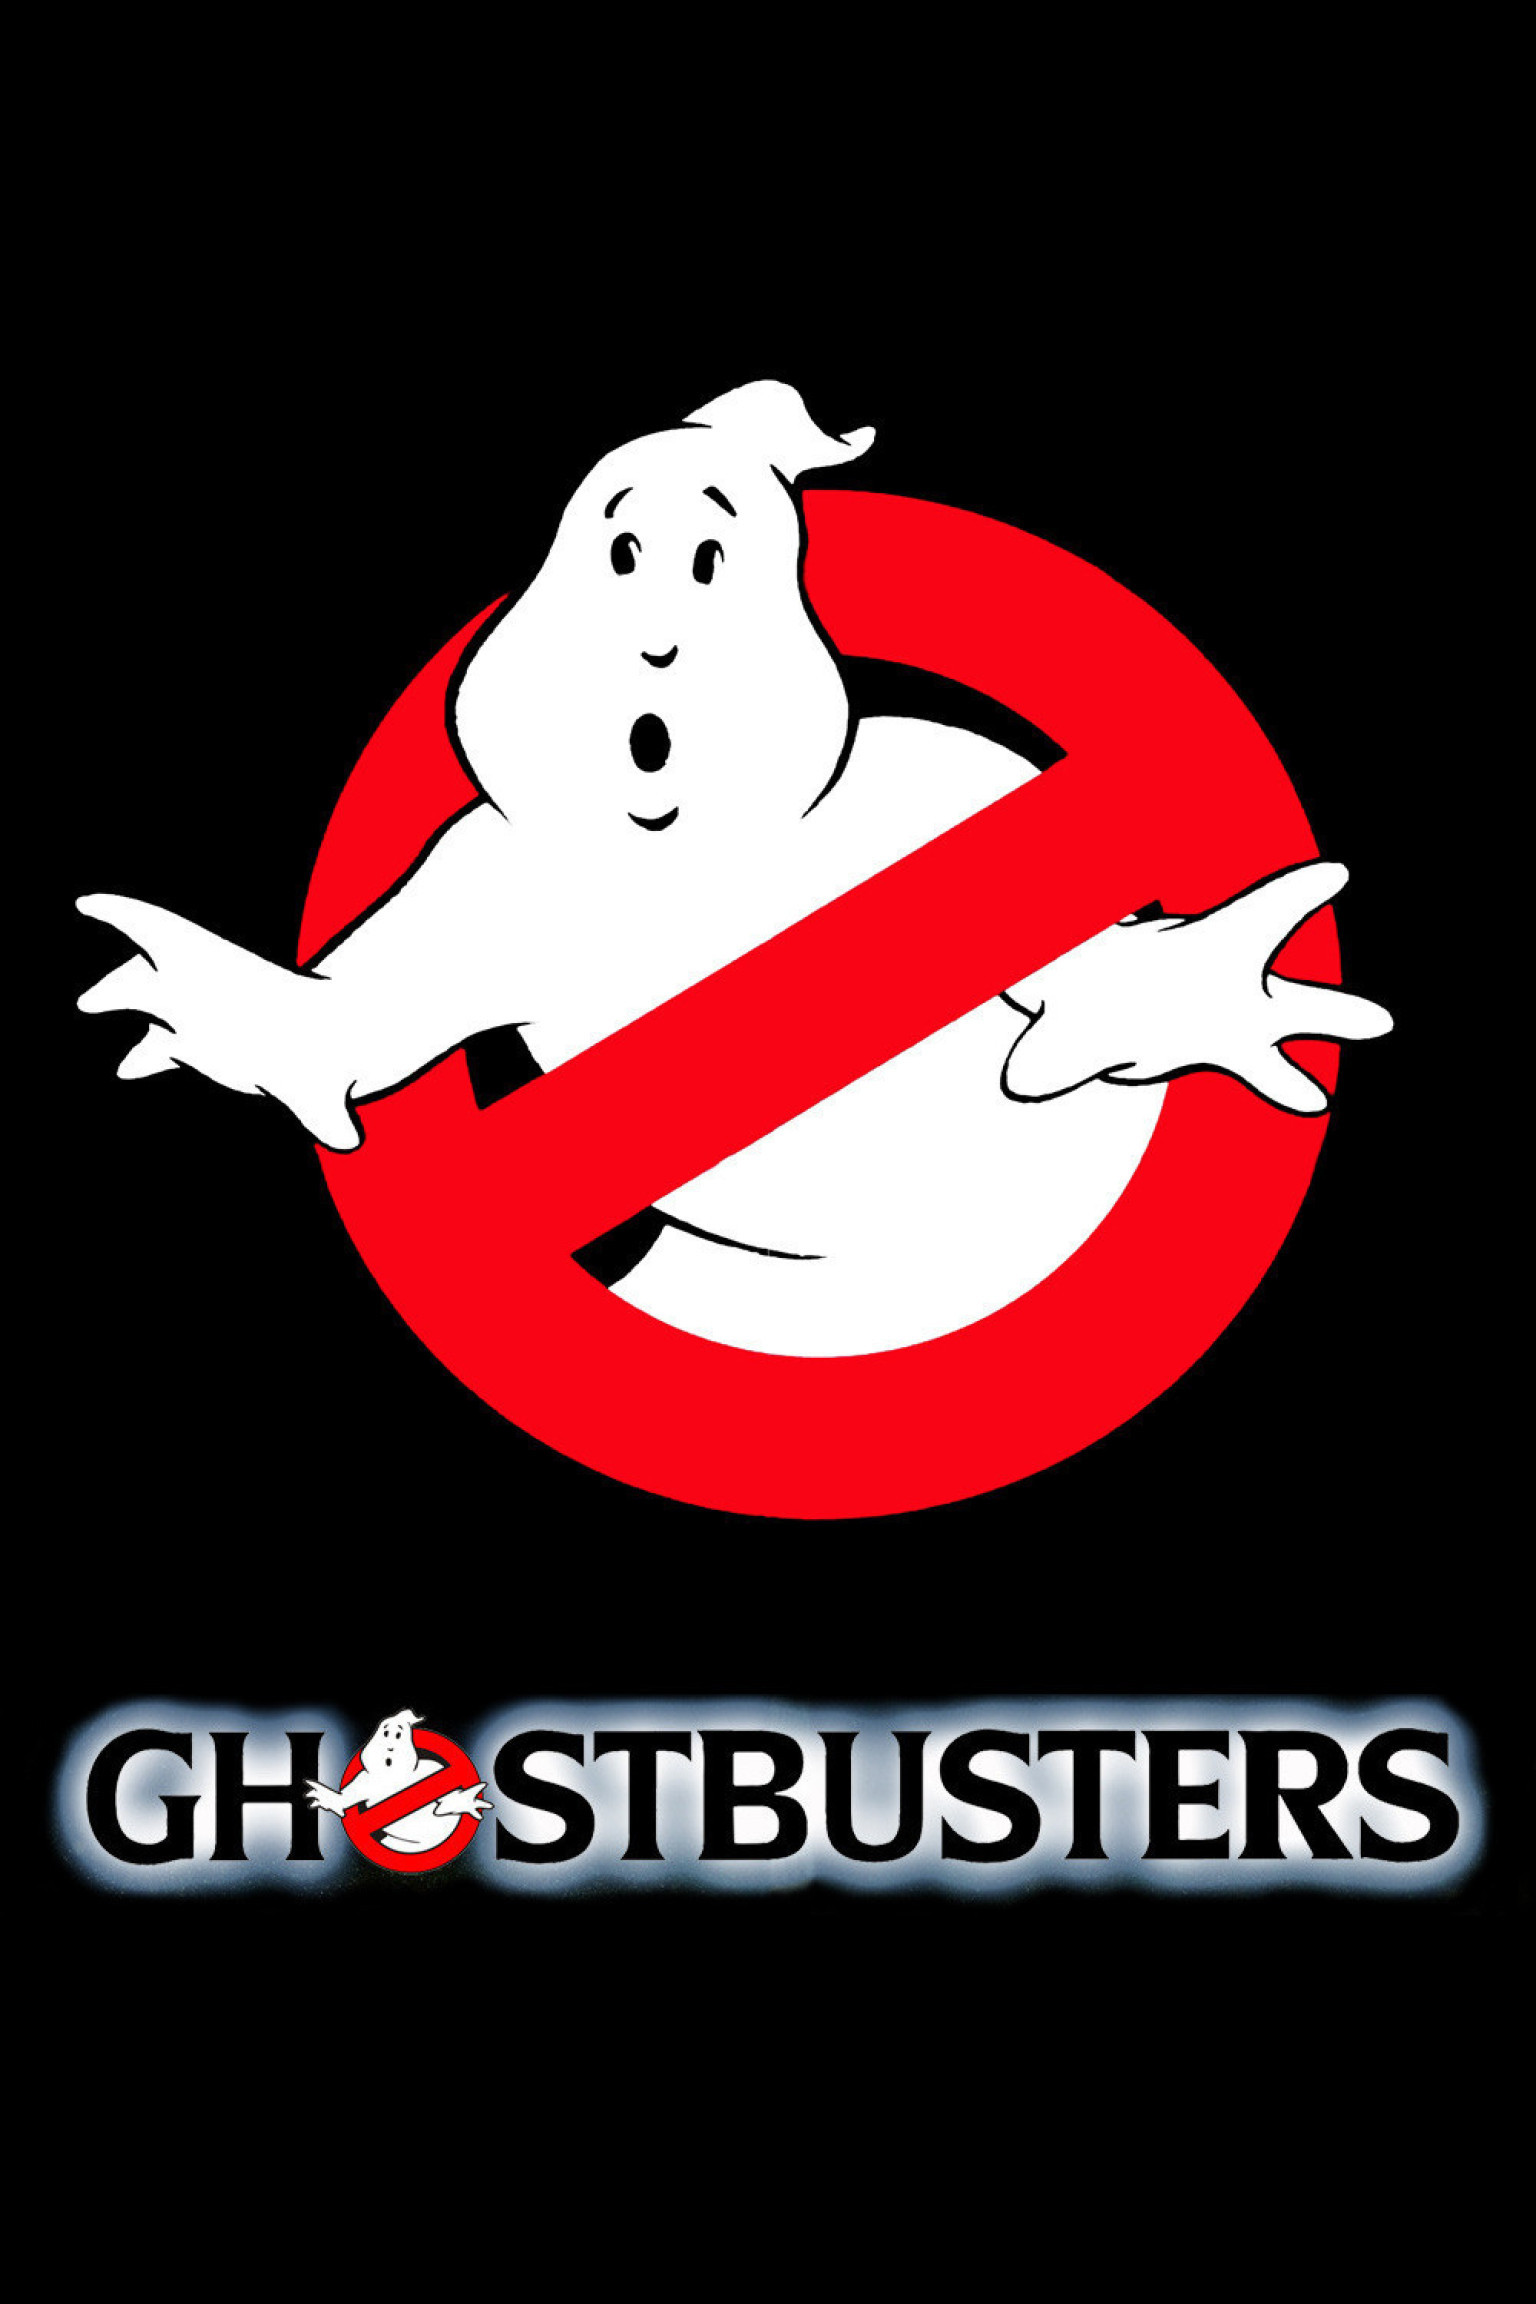 1536x2304 'Ghostbusters' Director: Paul Feig 'Perfect' To Direct Female-Centered ' Ghostbusters III' | HuffPost